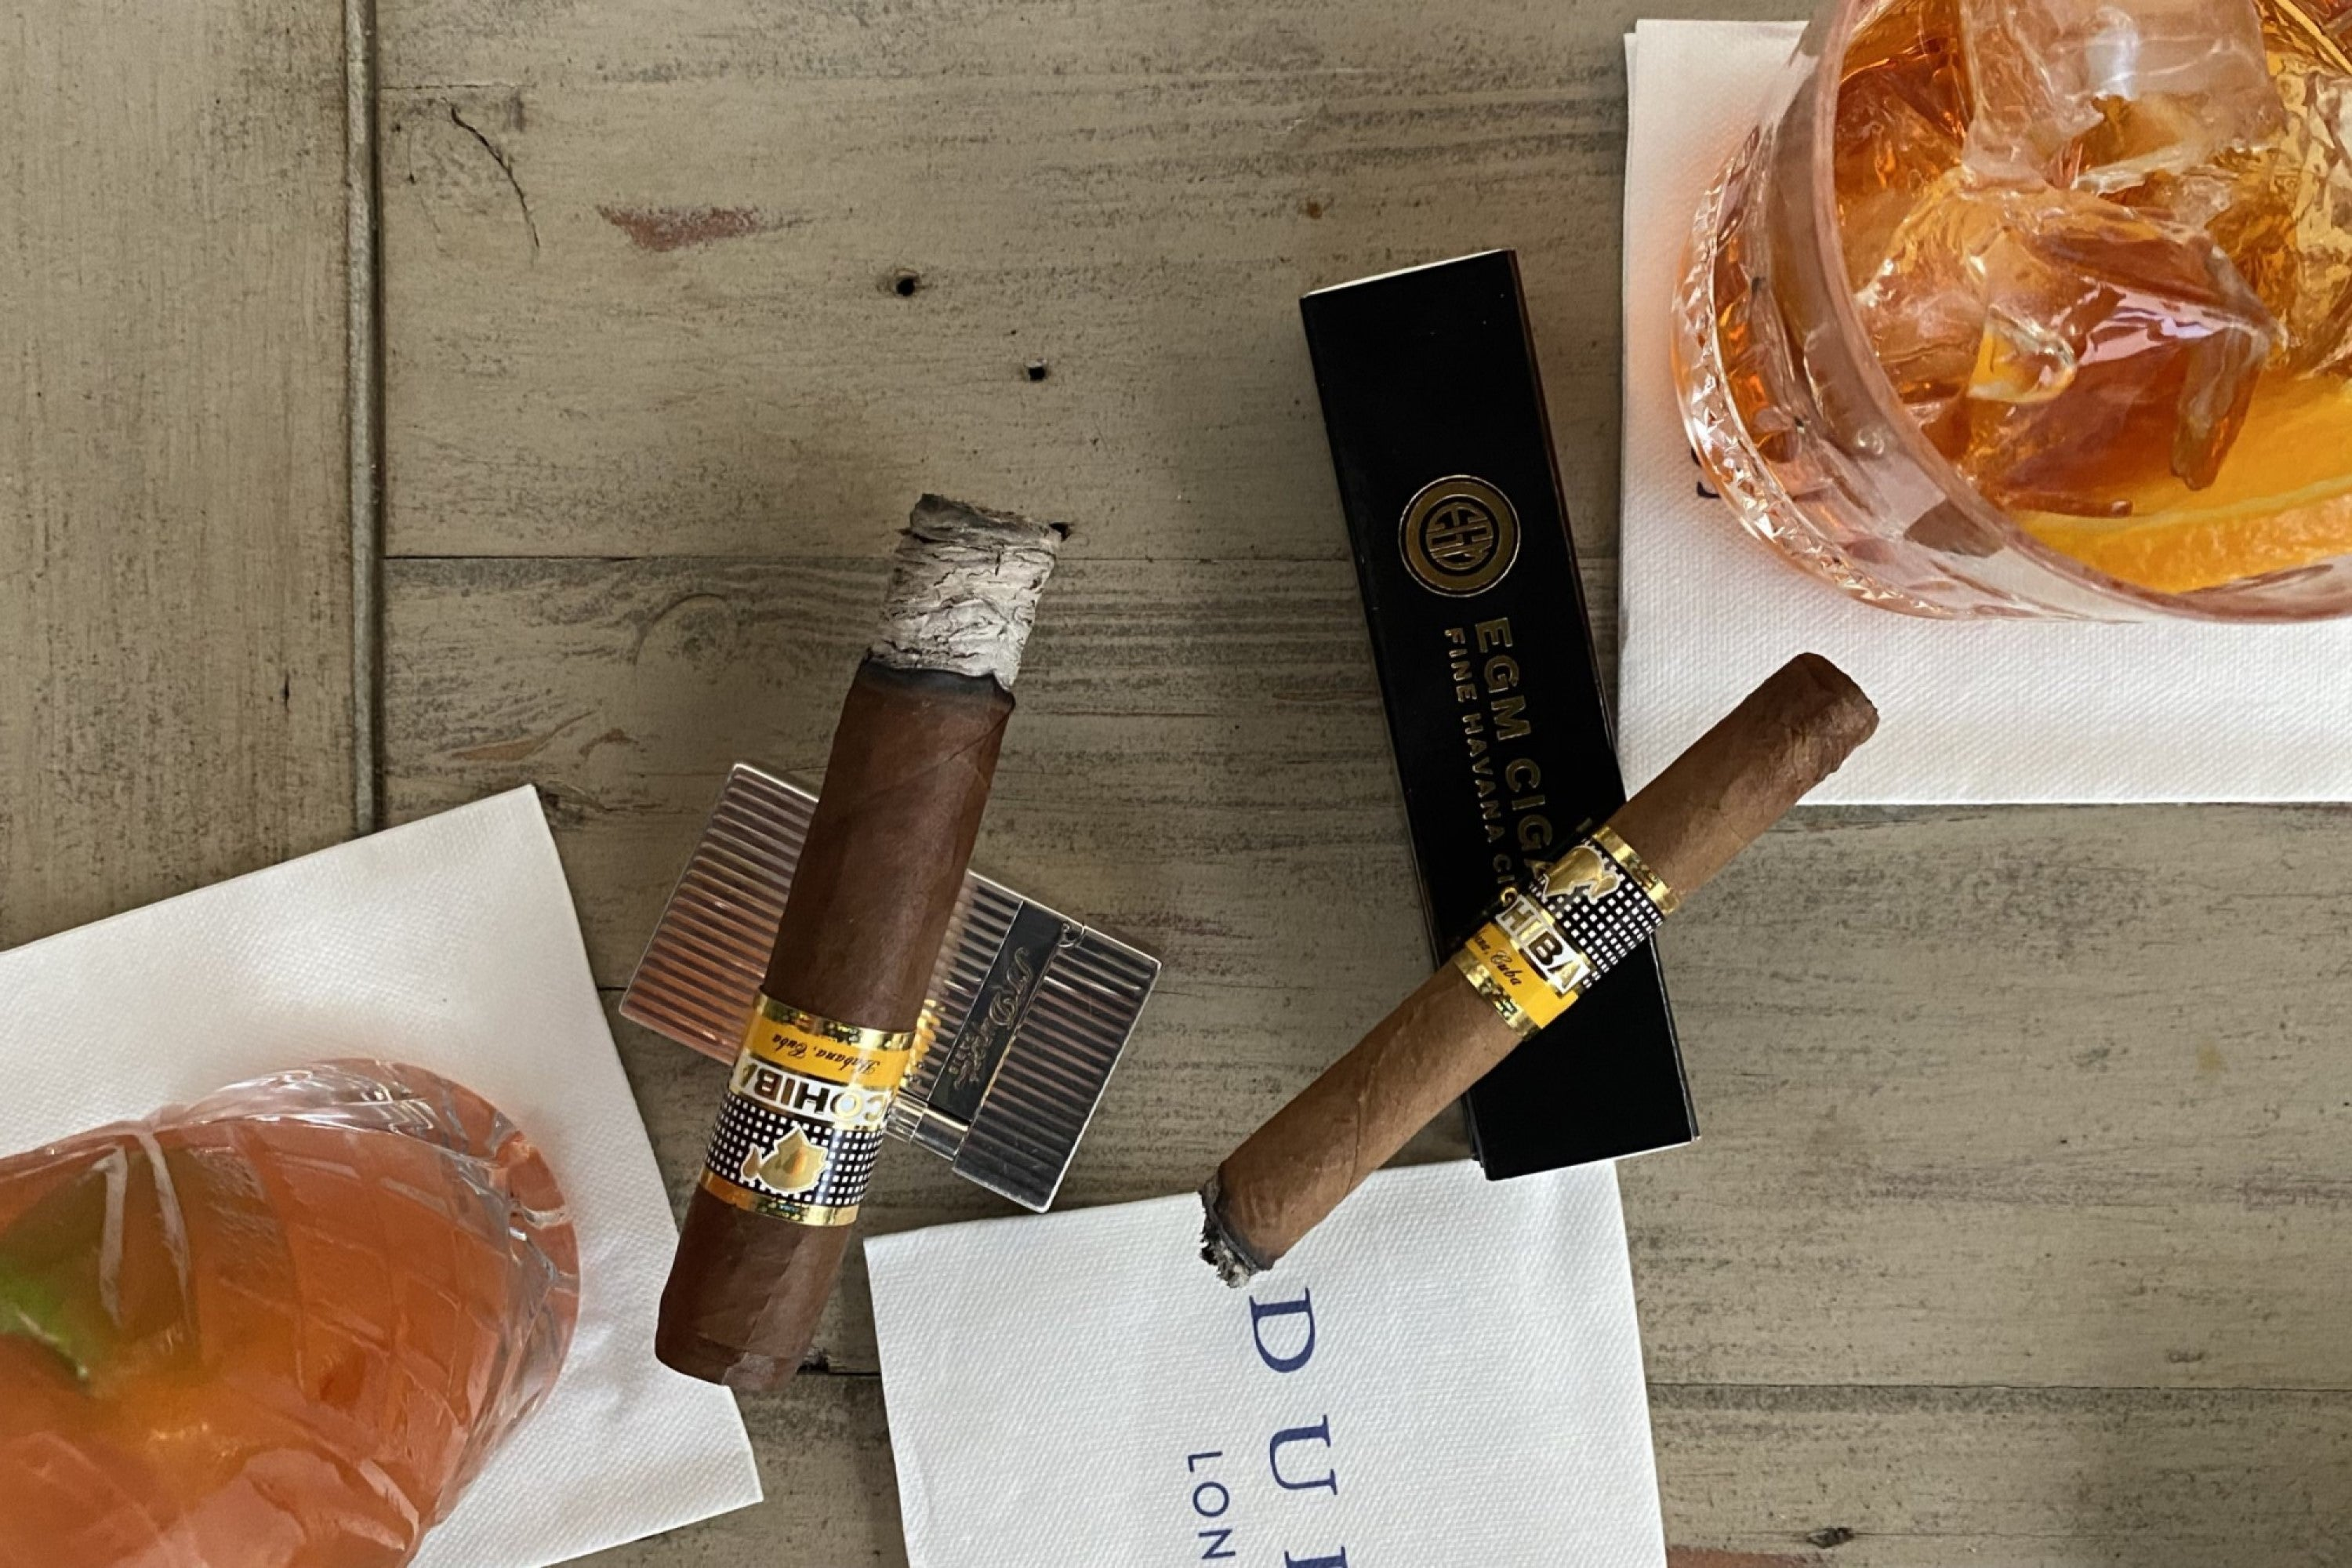 Cohiba Ccgars paired with negronis at Dukes Bar